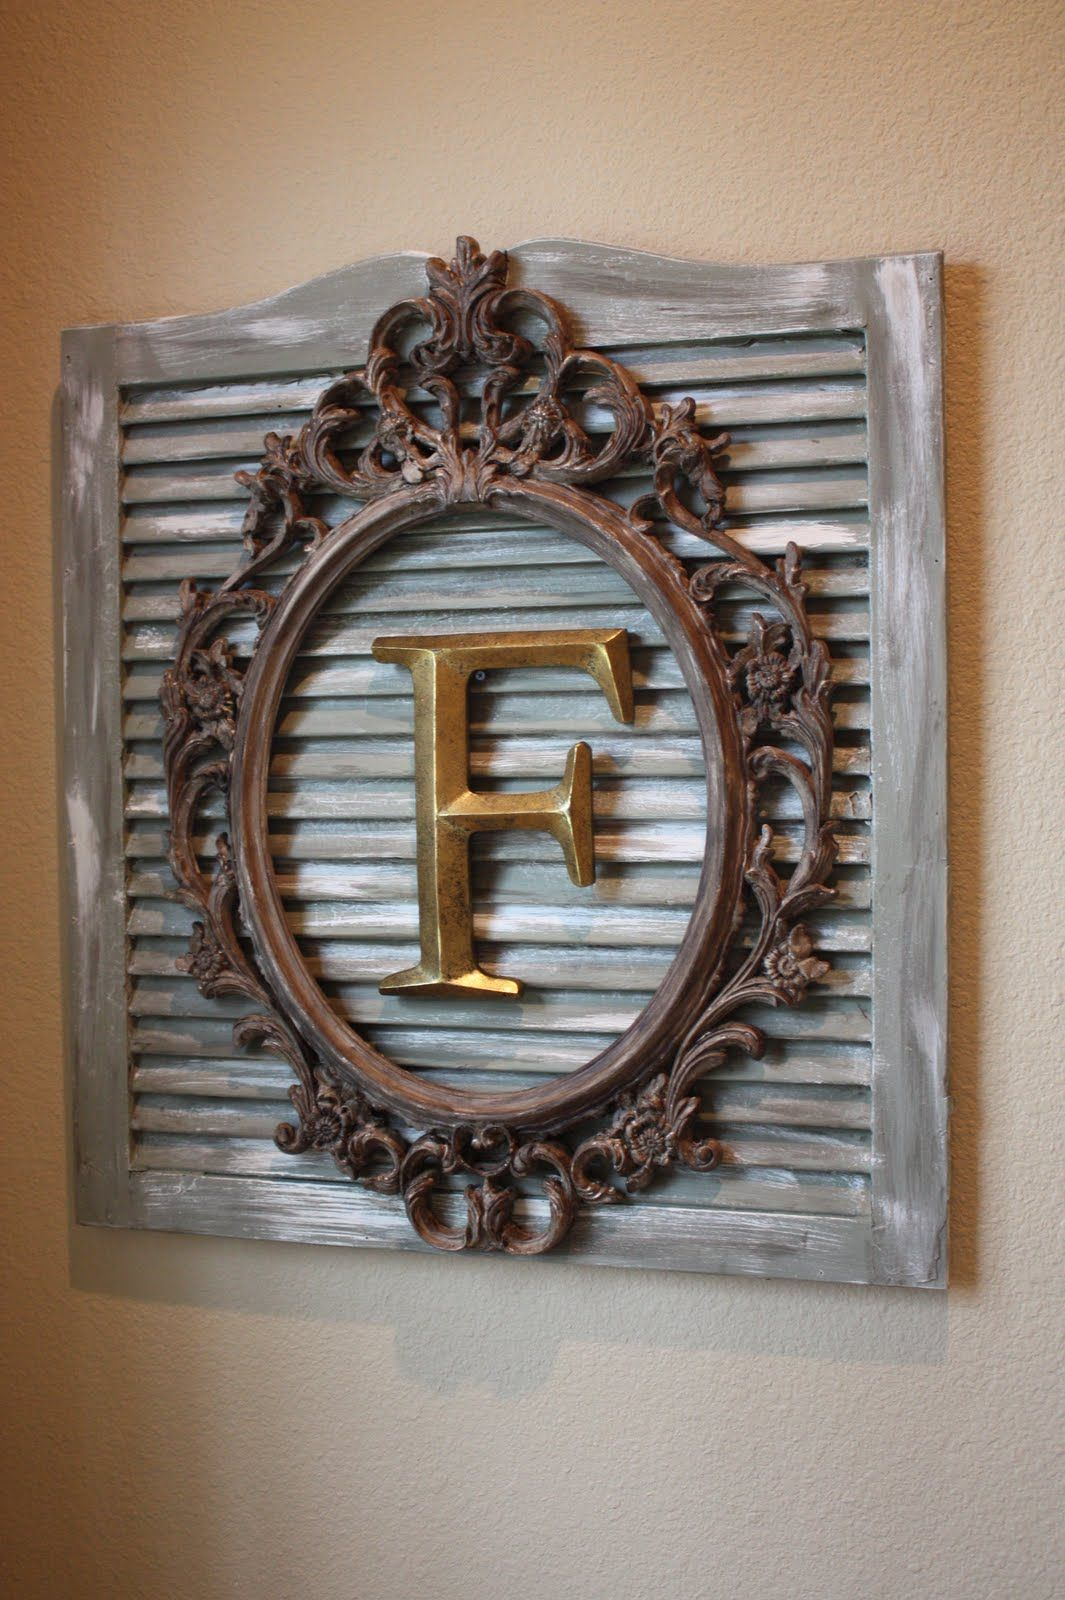 Old window ideas for outside  upcycled new ways with old window shutters  repurposed window and